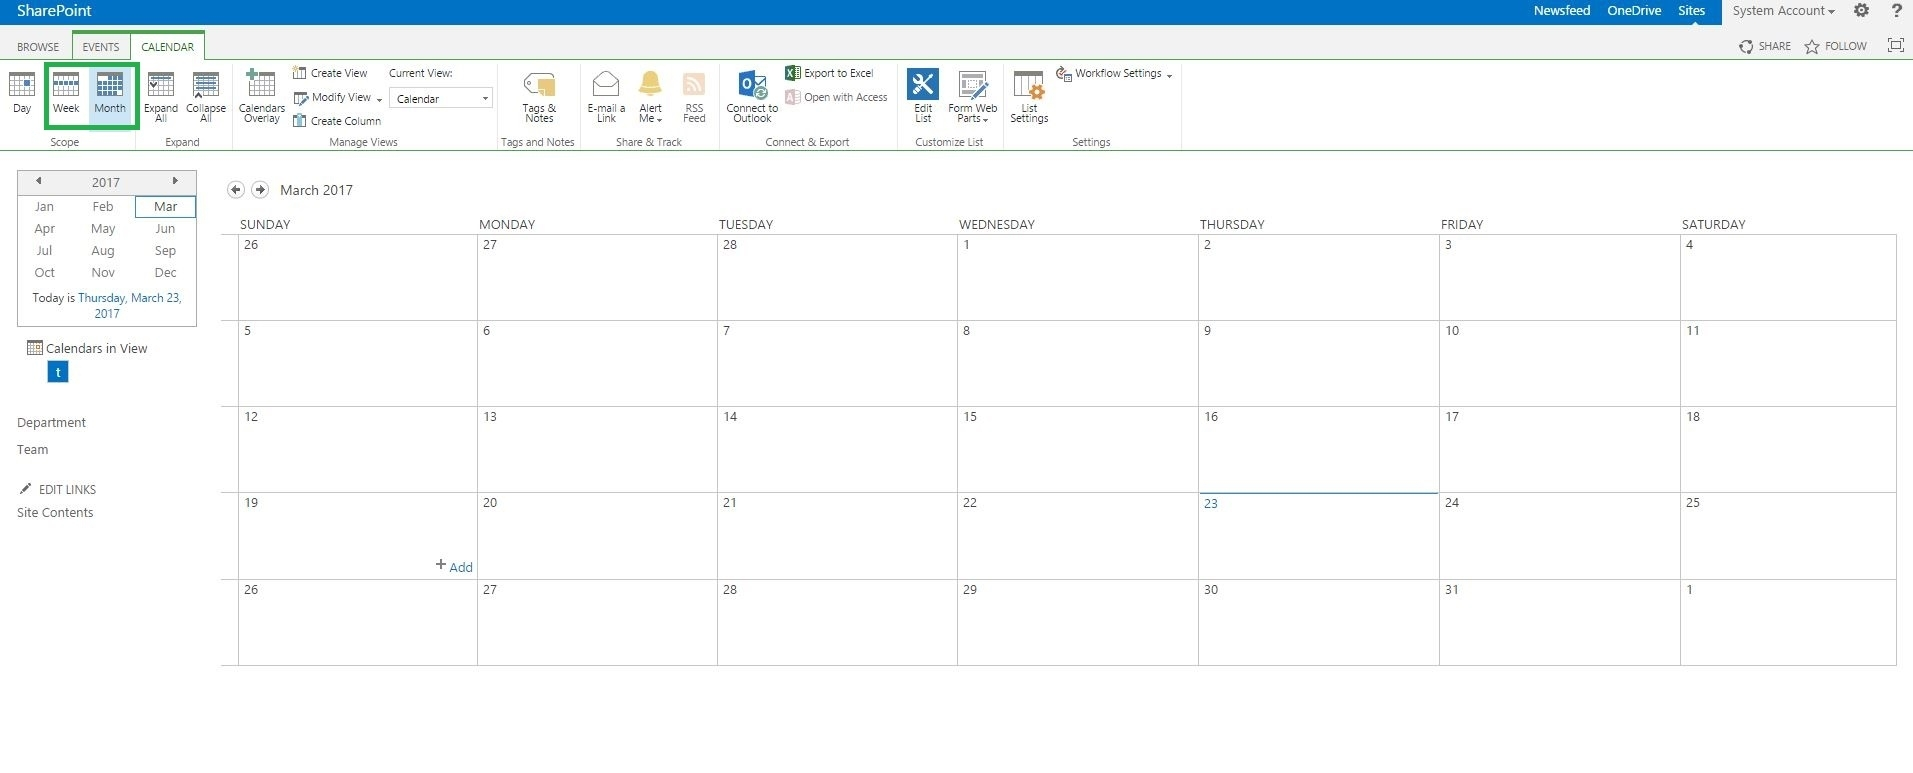 How To Call A Function Of Month And Week View In Calendar